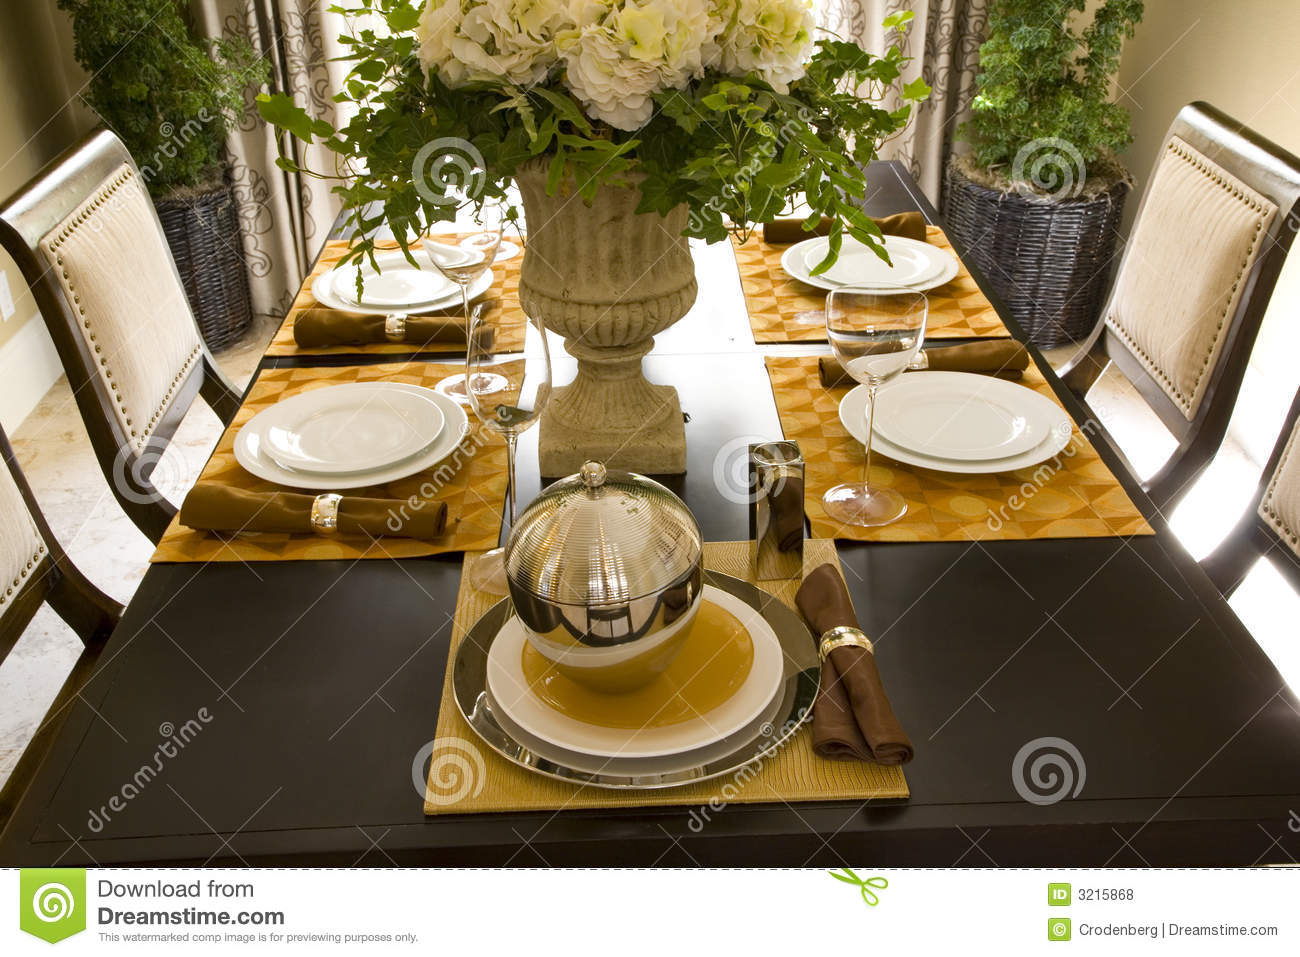 Dining table decor 1707 stock photo image of suburb for Table decorations for dining table